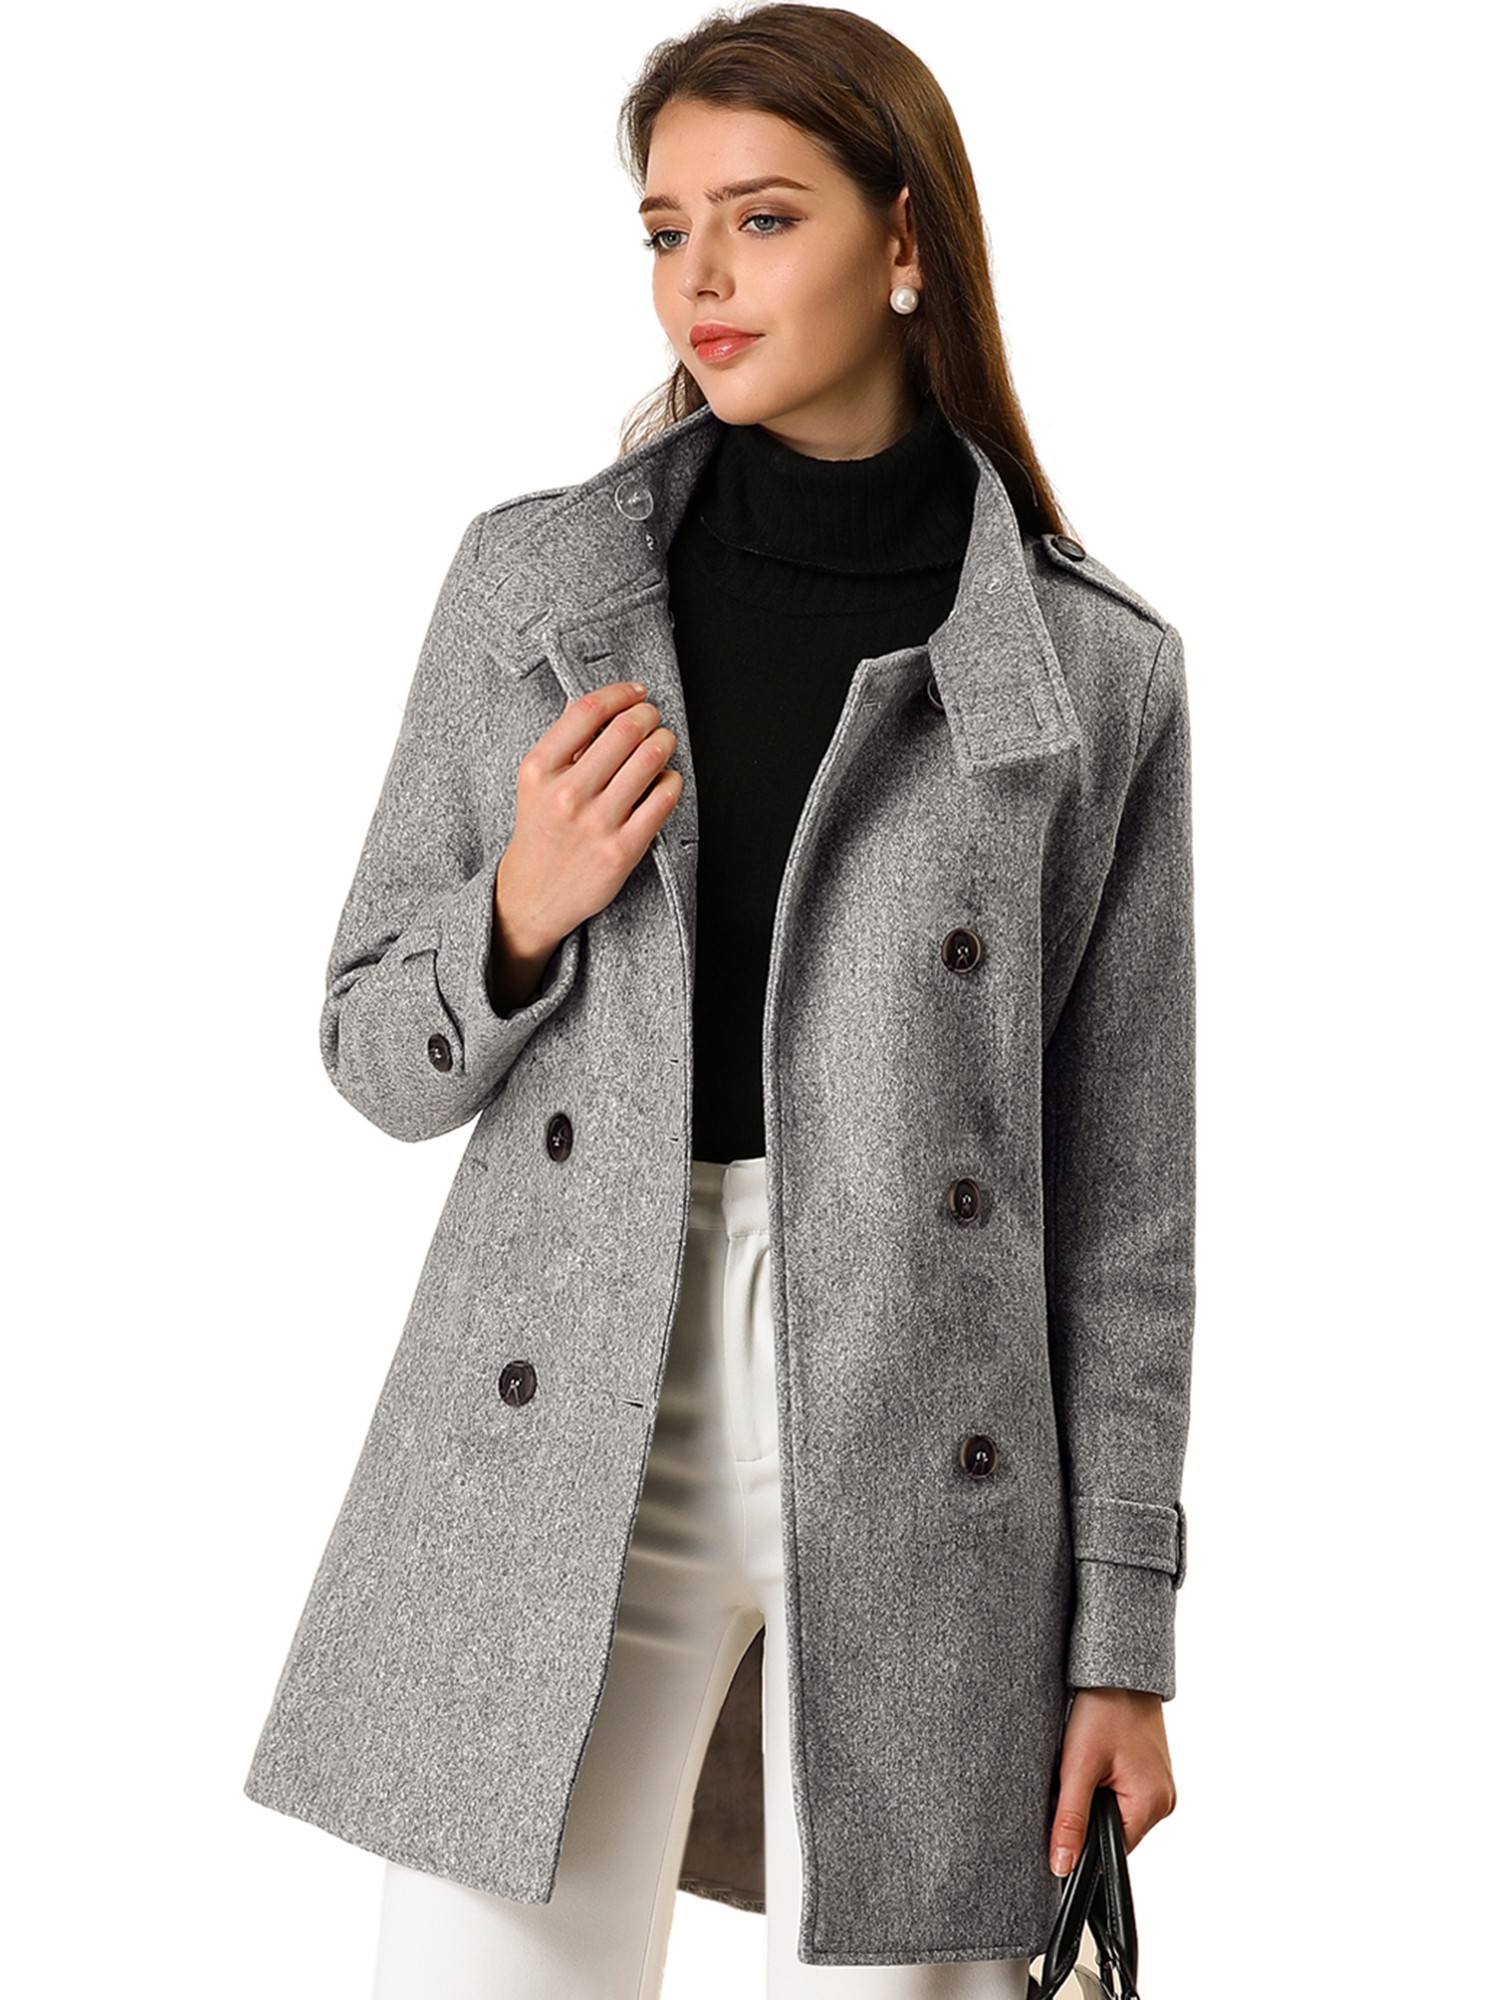 Women's Winter Stand Collar Double Breasted Outwear Trench Coat Gray L